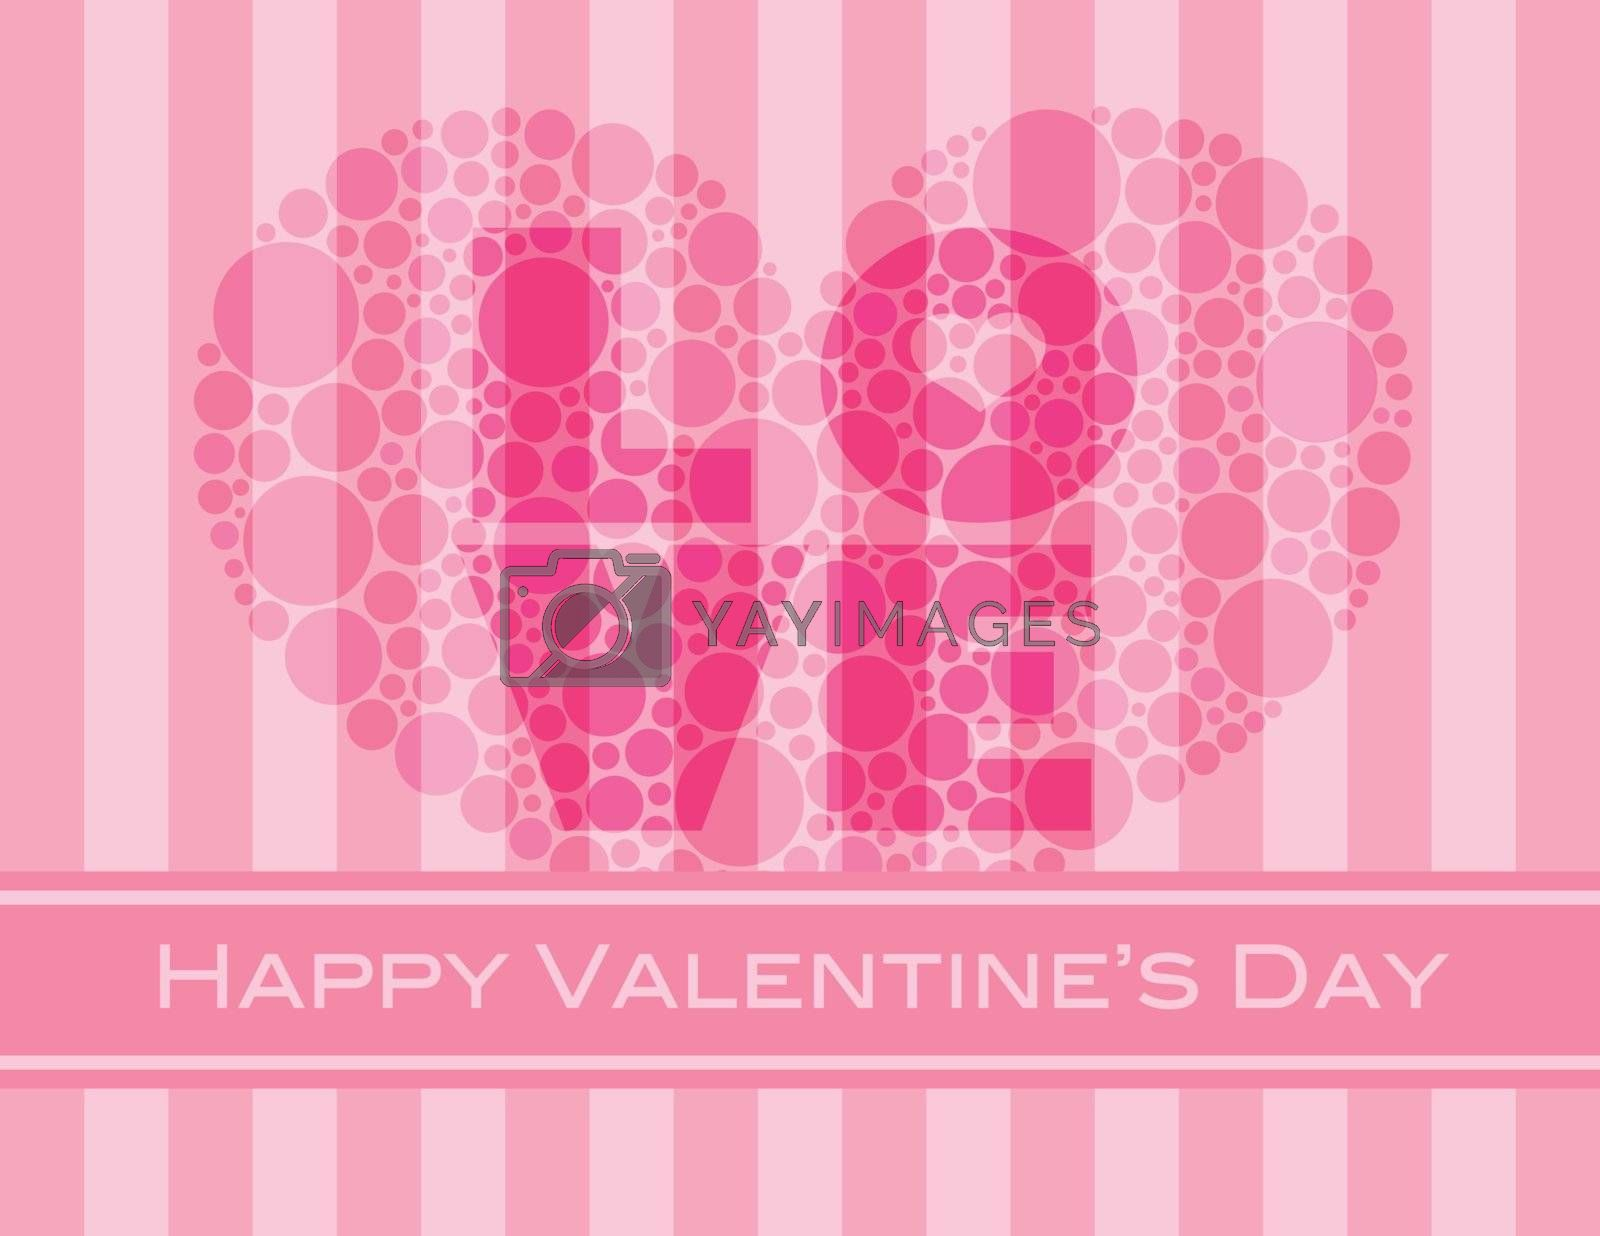 Happy Valentines Day with Love and Heart Shape Polka Dots on Pink Stripes Pattern Background Illustration